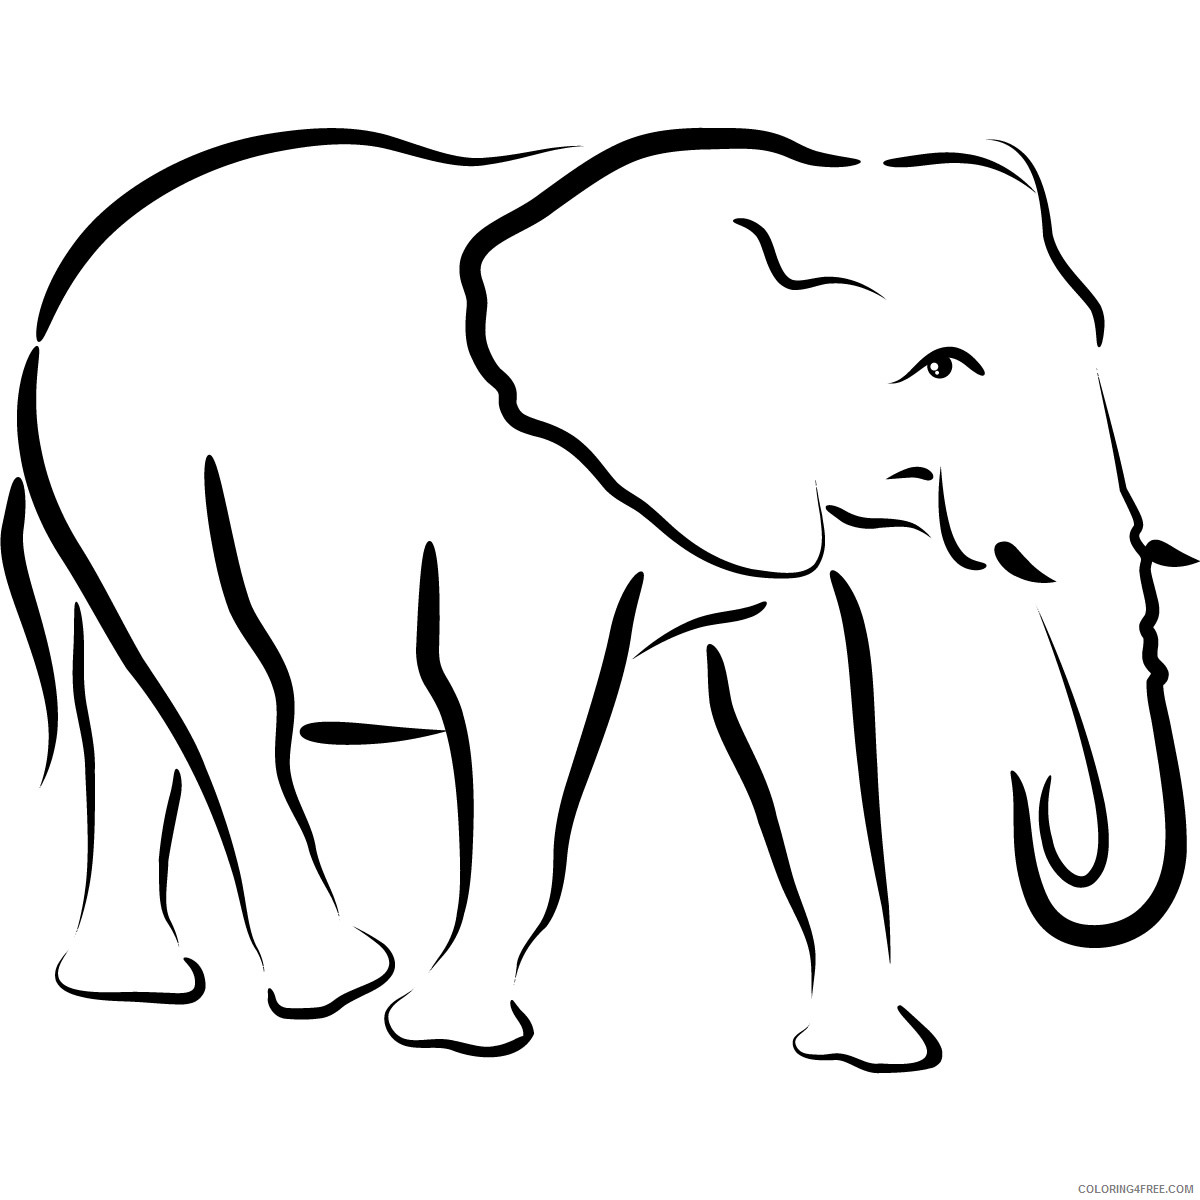 Elephant Outline Coloring Pages 10 elephant drawing outline free Printable Coloring4free